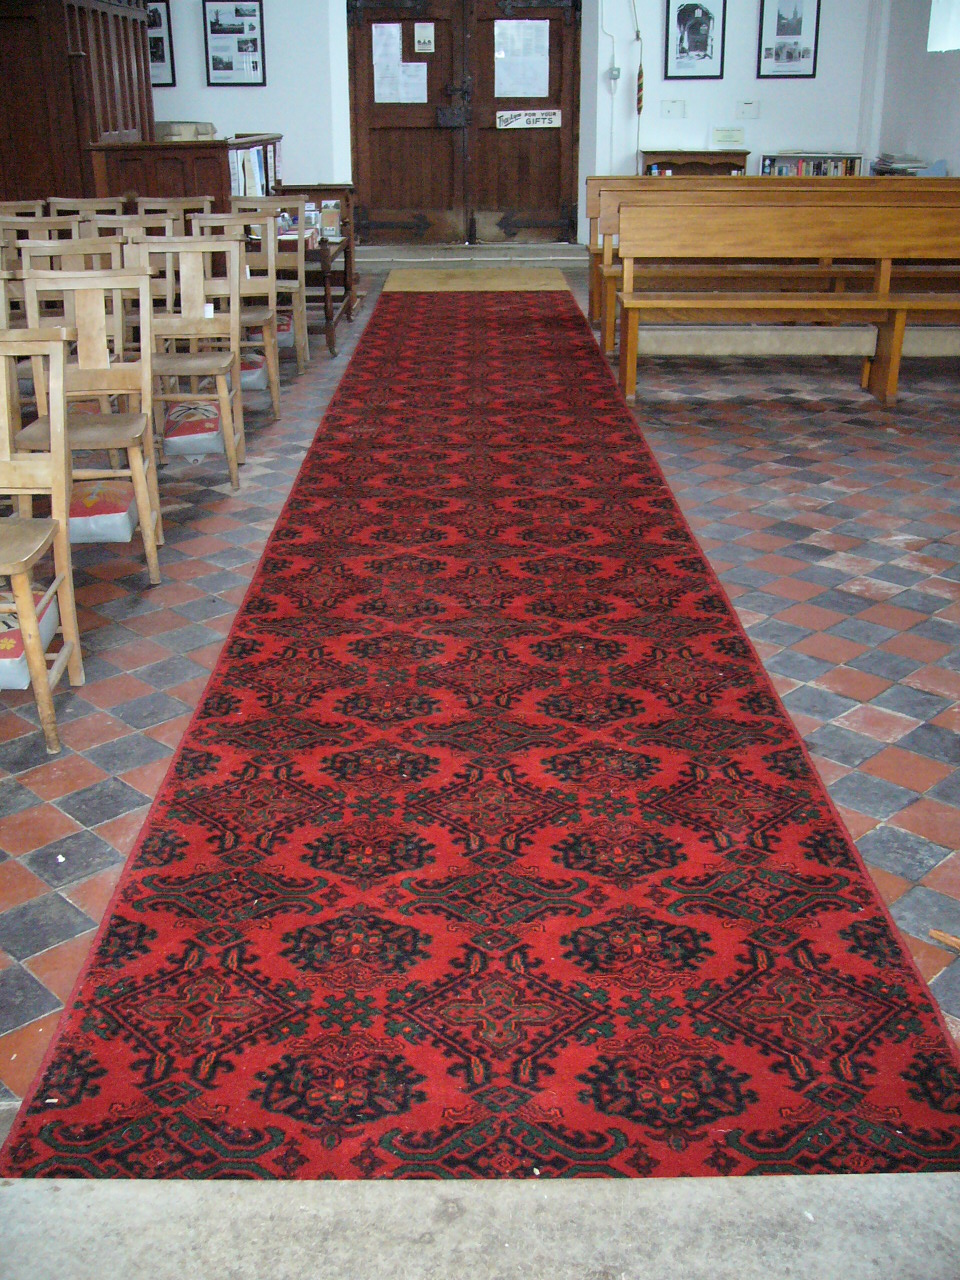 Church Carpet Carpet Vidalondon